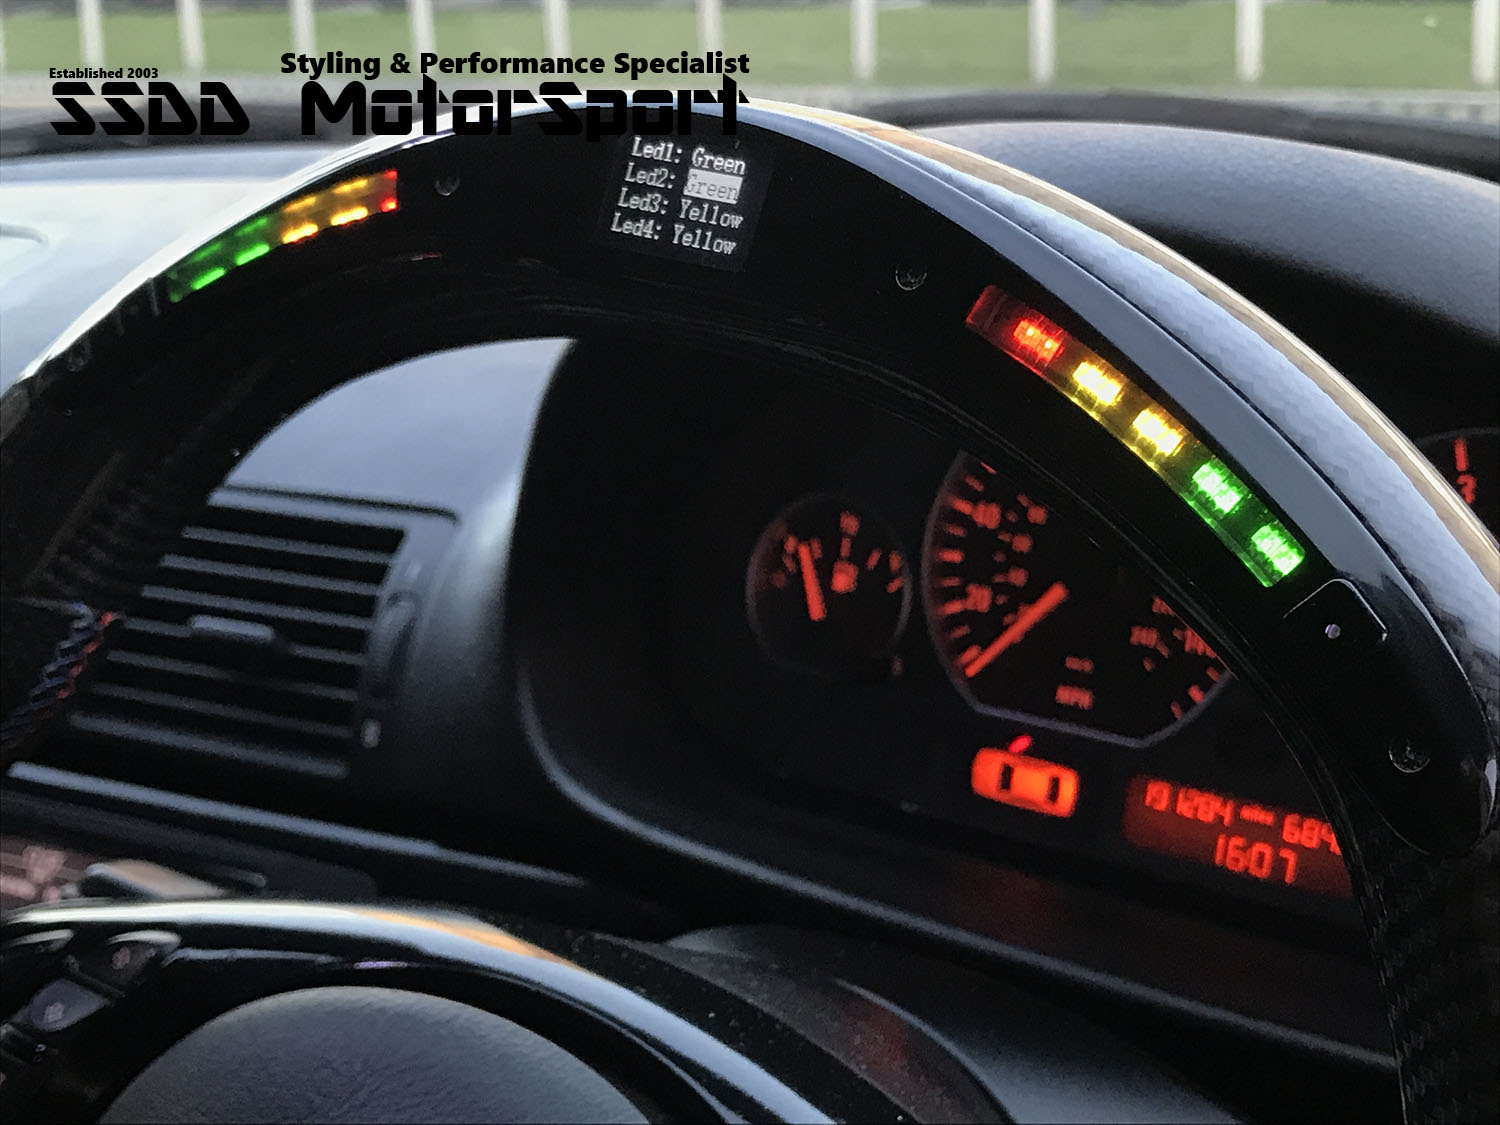 bmw-e46-lcd-carbon-race-display-steering-wheel-uik-in-action-4-ssdd-logo.jpg